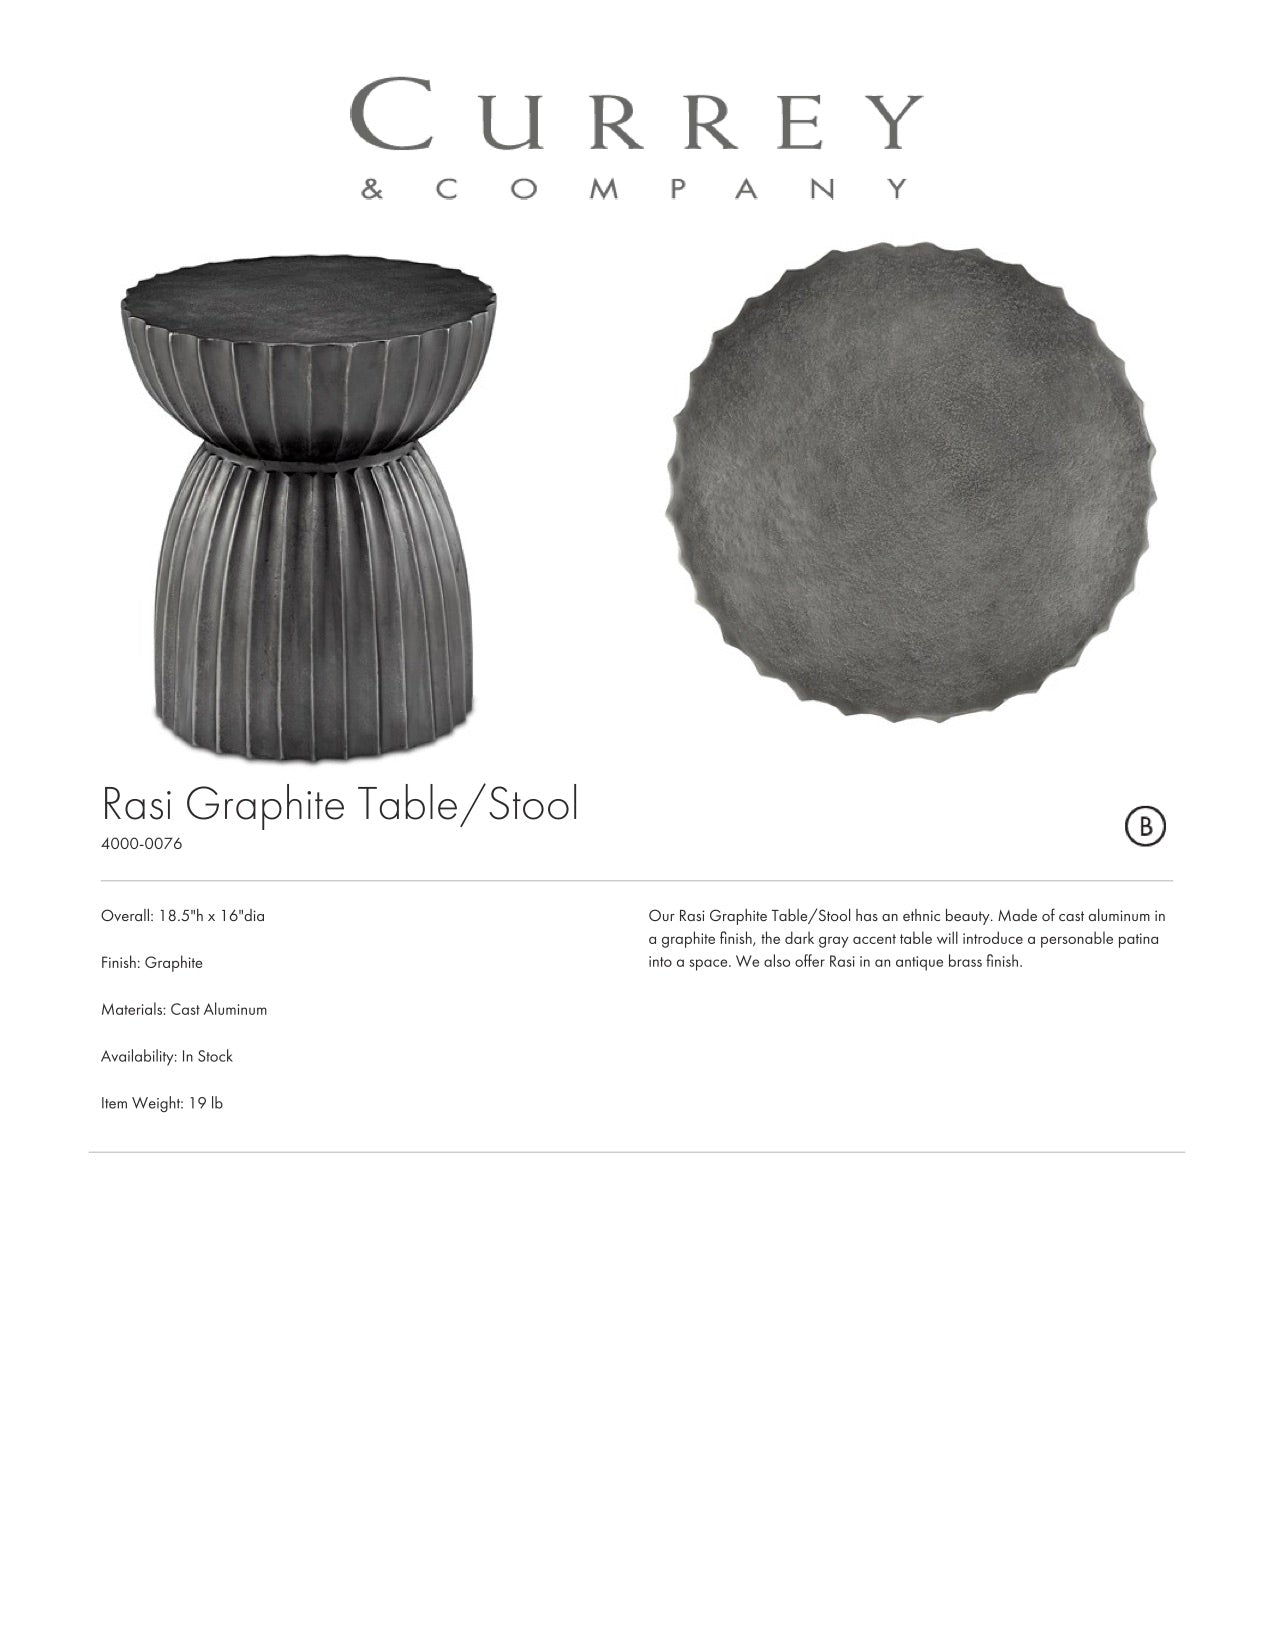 Currey & Company Rasi Graphite Table Tearsheet